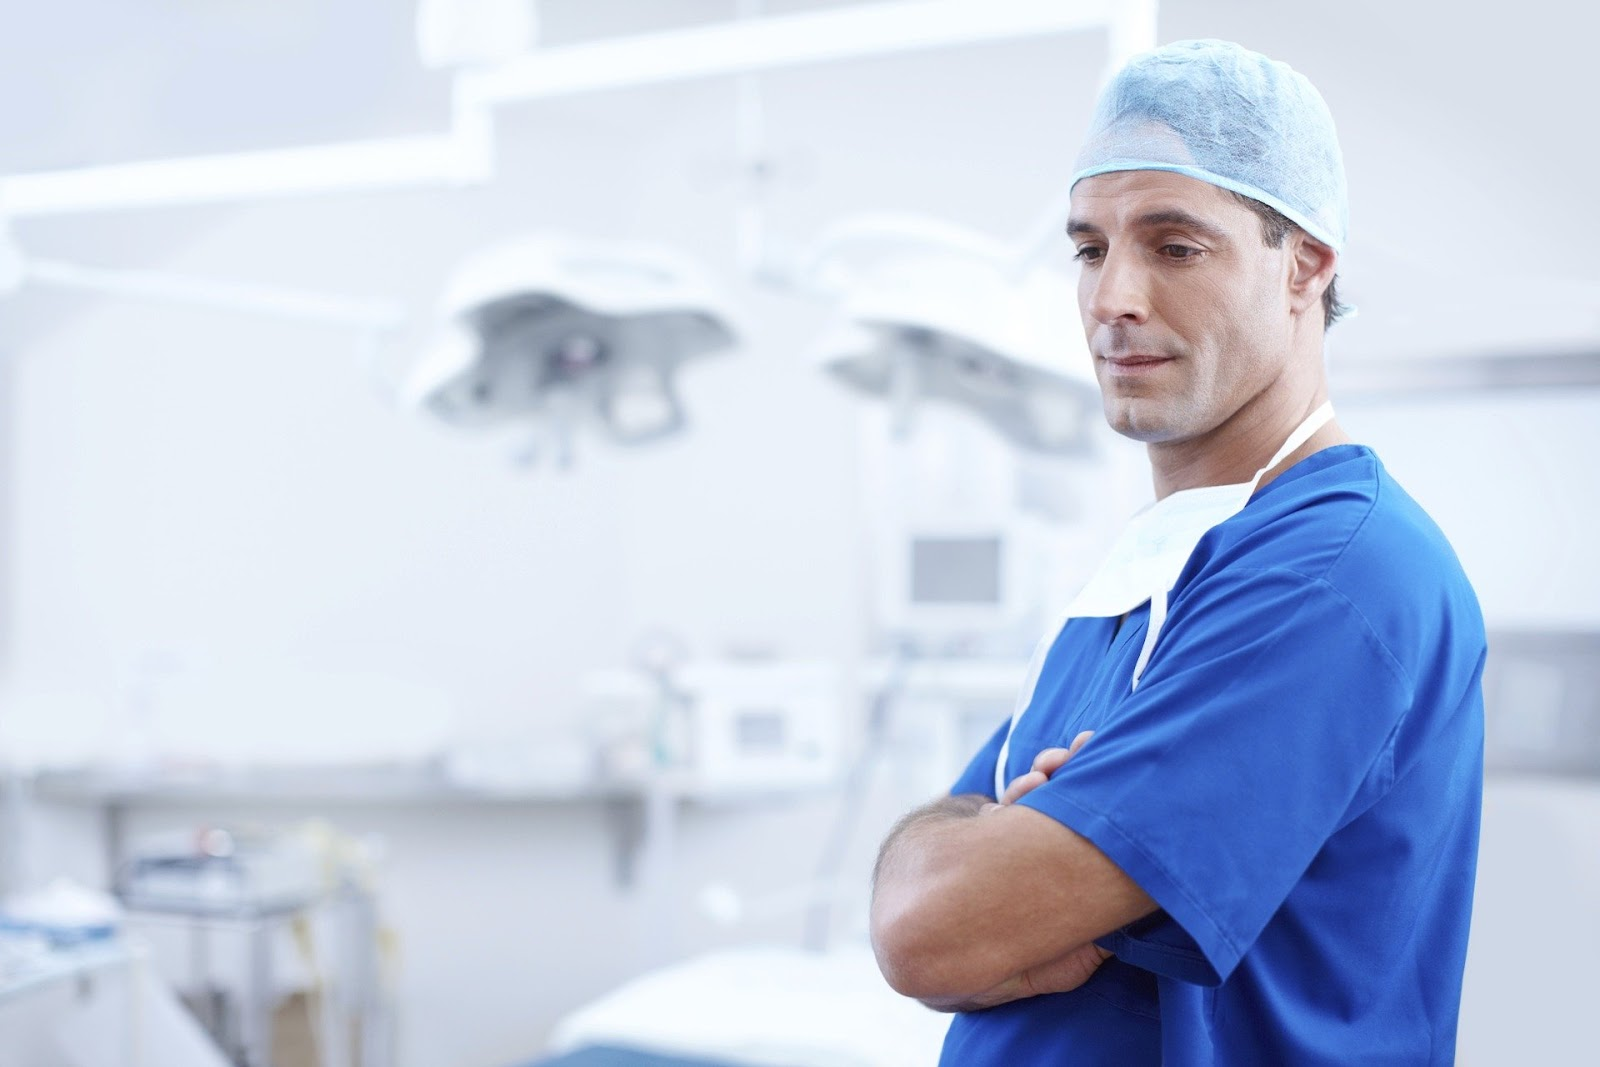 doctor looking down in operating theatre